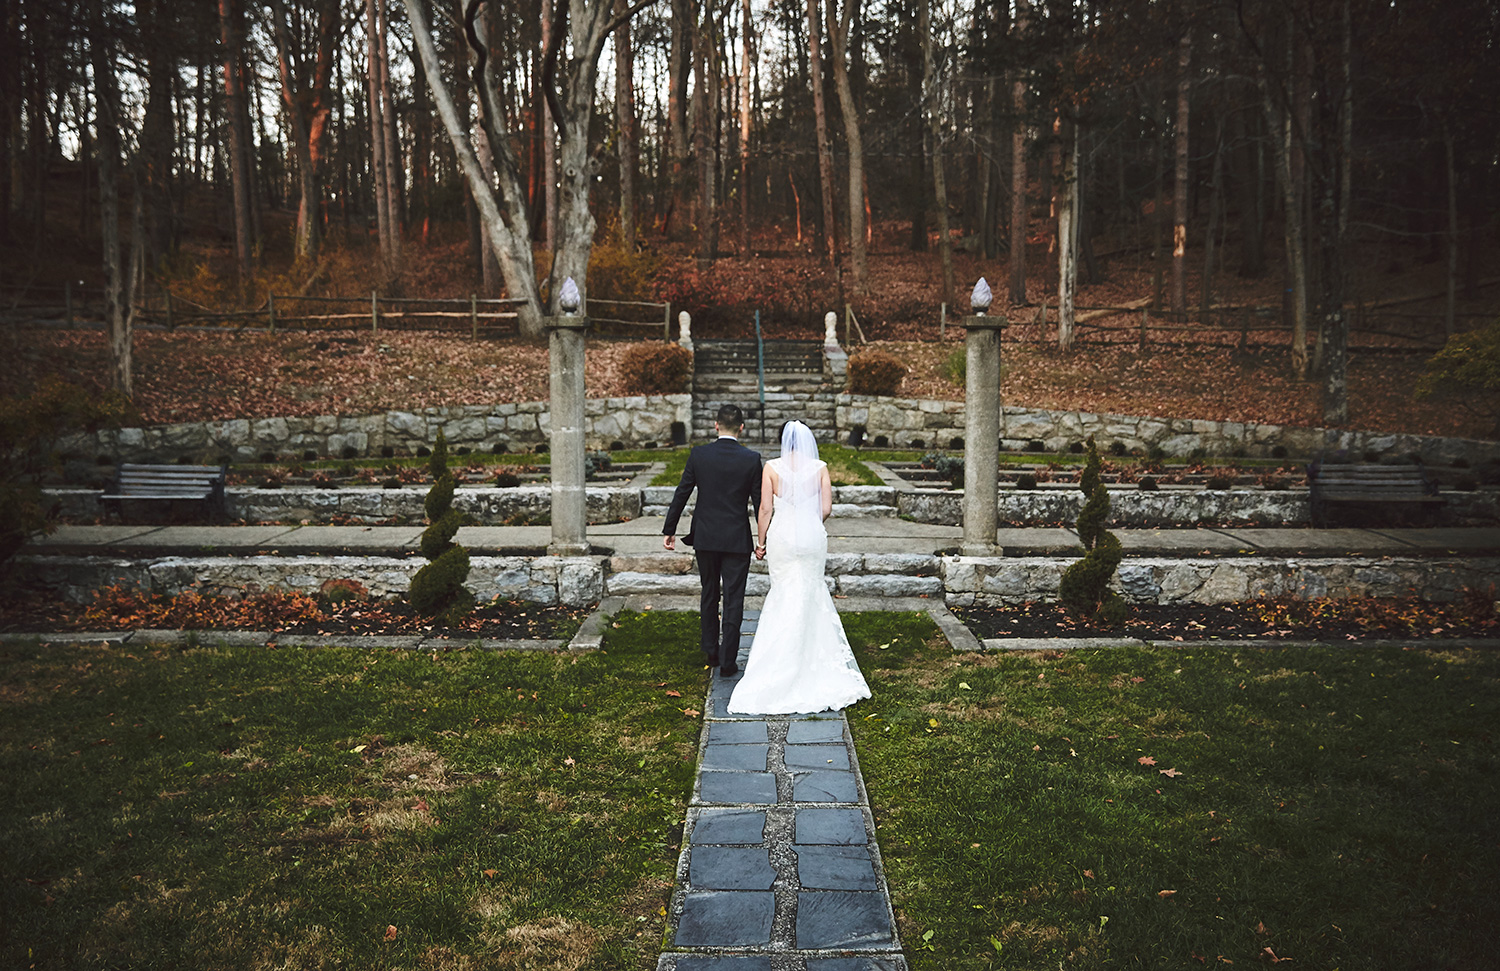 161119_ArrowParkLake&LodgeWedding_By_BriJohnsonWeddings_0122.jpg